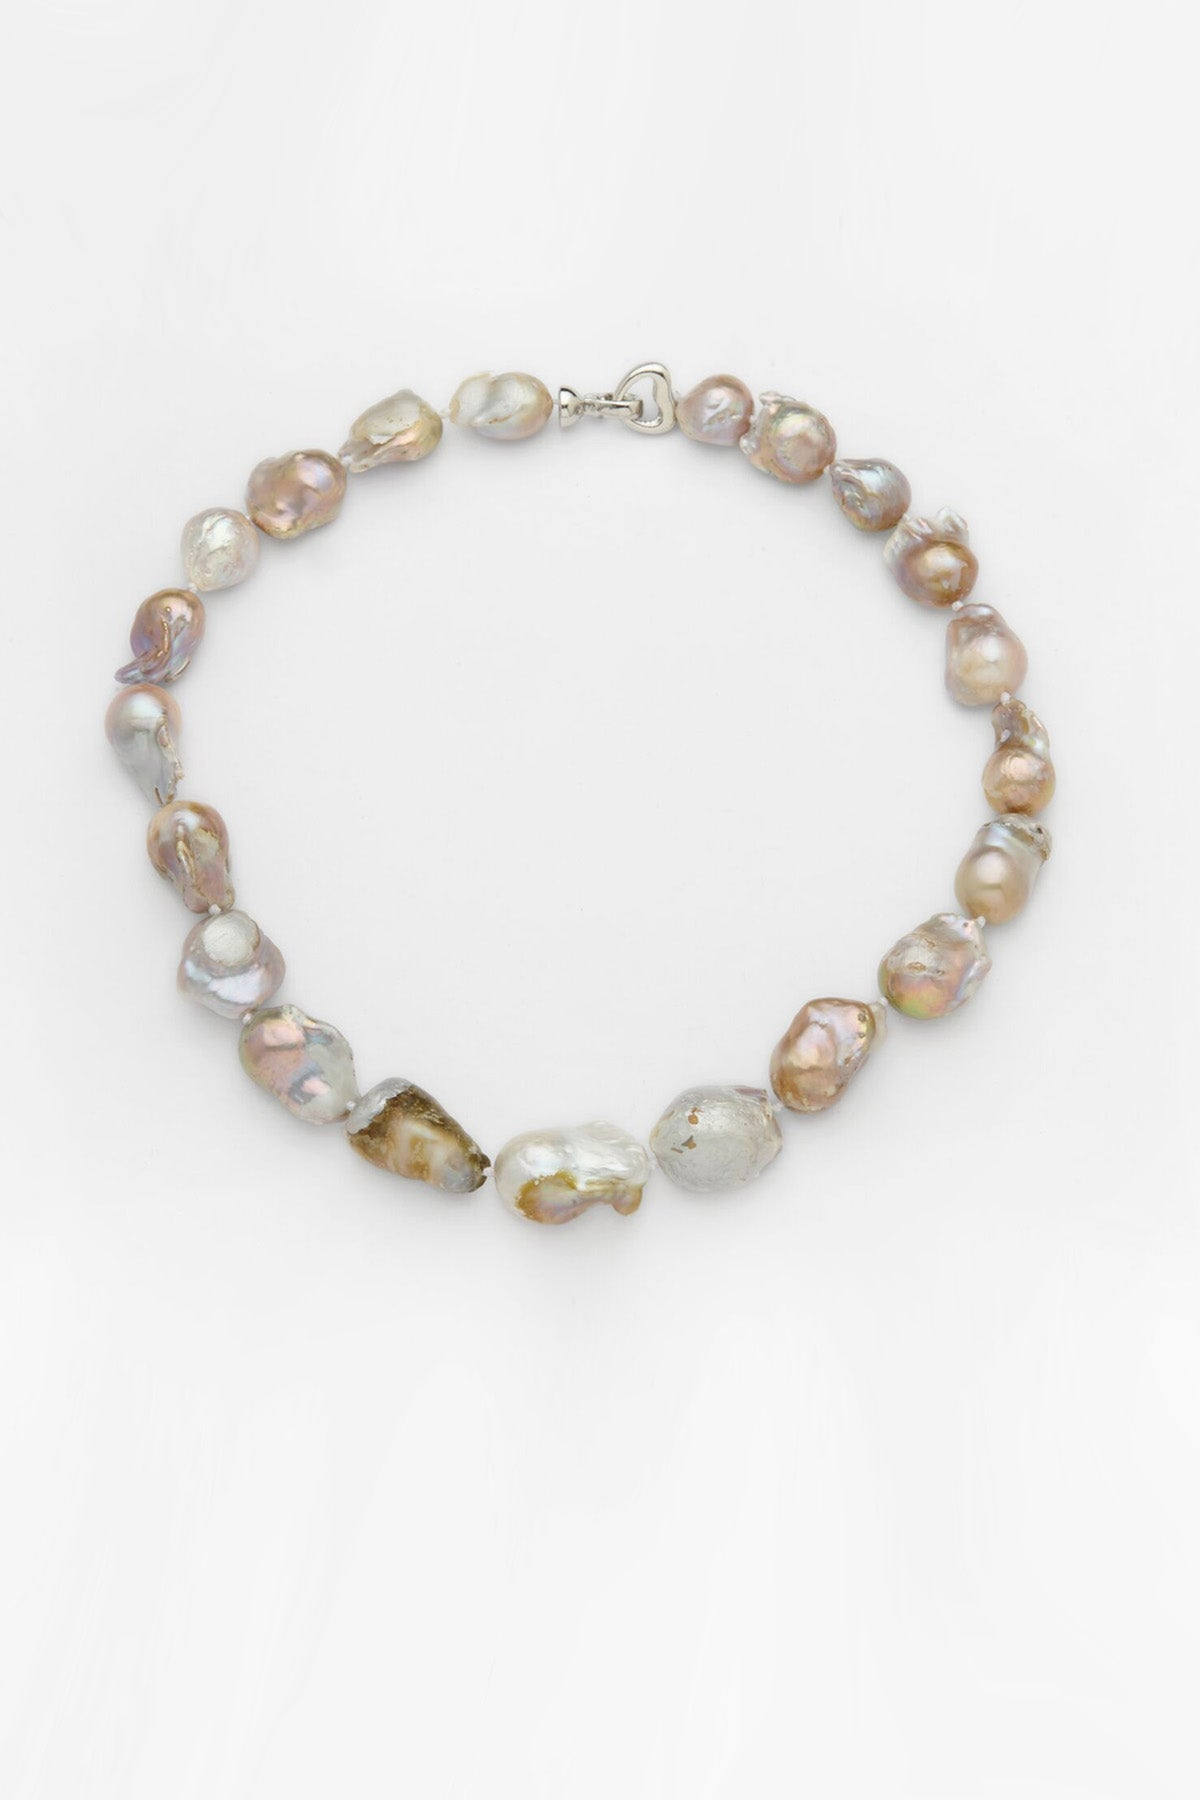 Keshi Strand Pearl Necklace - Silver